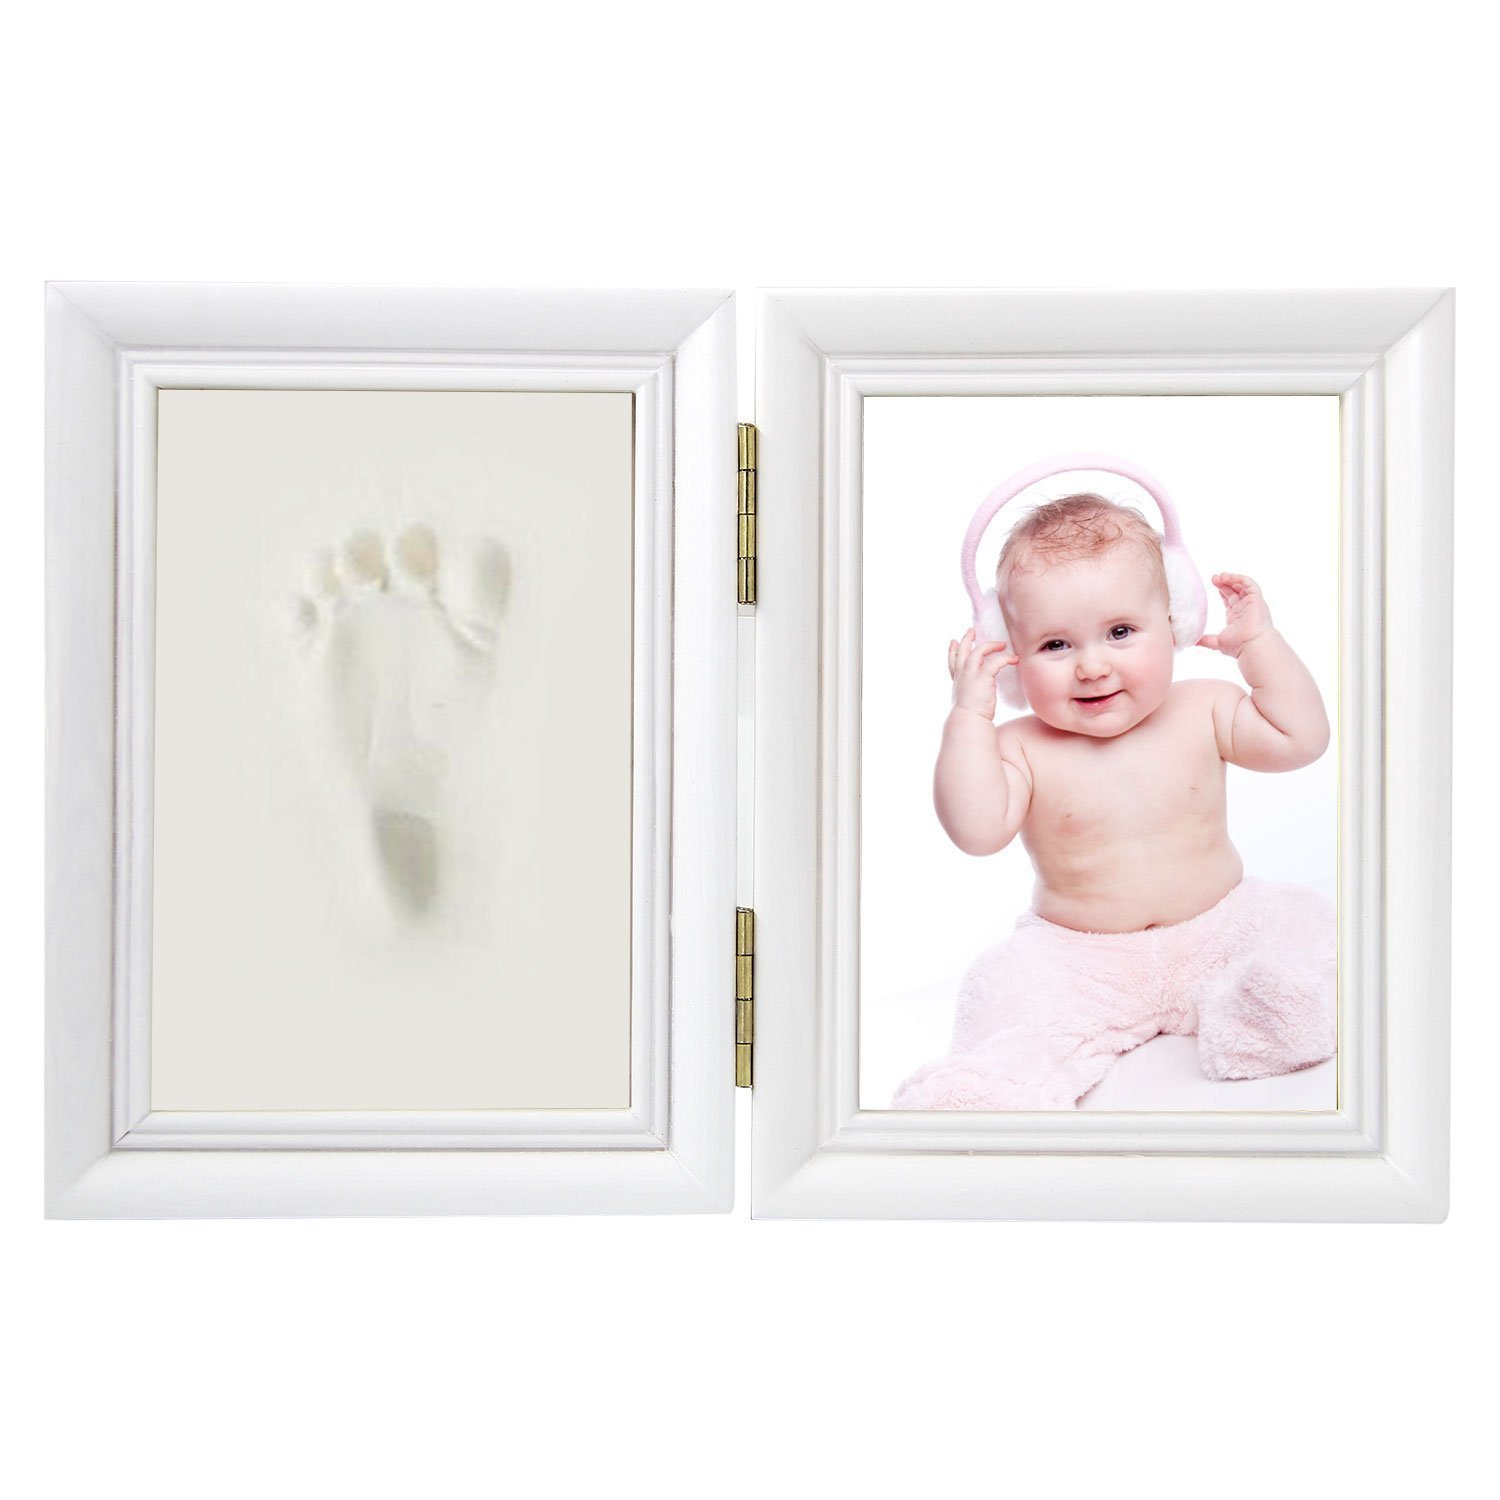 Elsatsang Newborn Baby Handprint and Footprint Photo Frame Kit, for Baby Boy/Girl Handprint or Footprint & White Frame A Good Gift for Christmas(White)